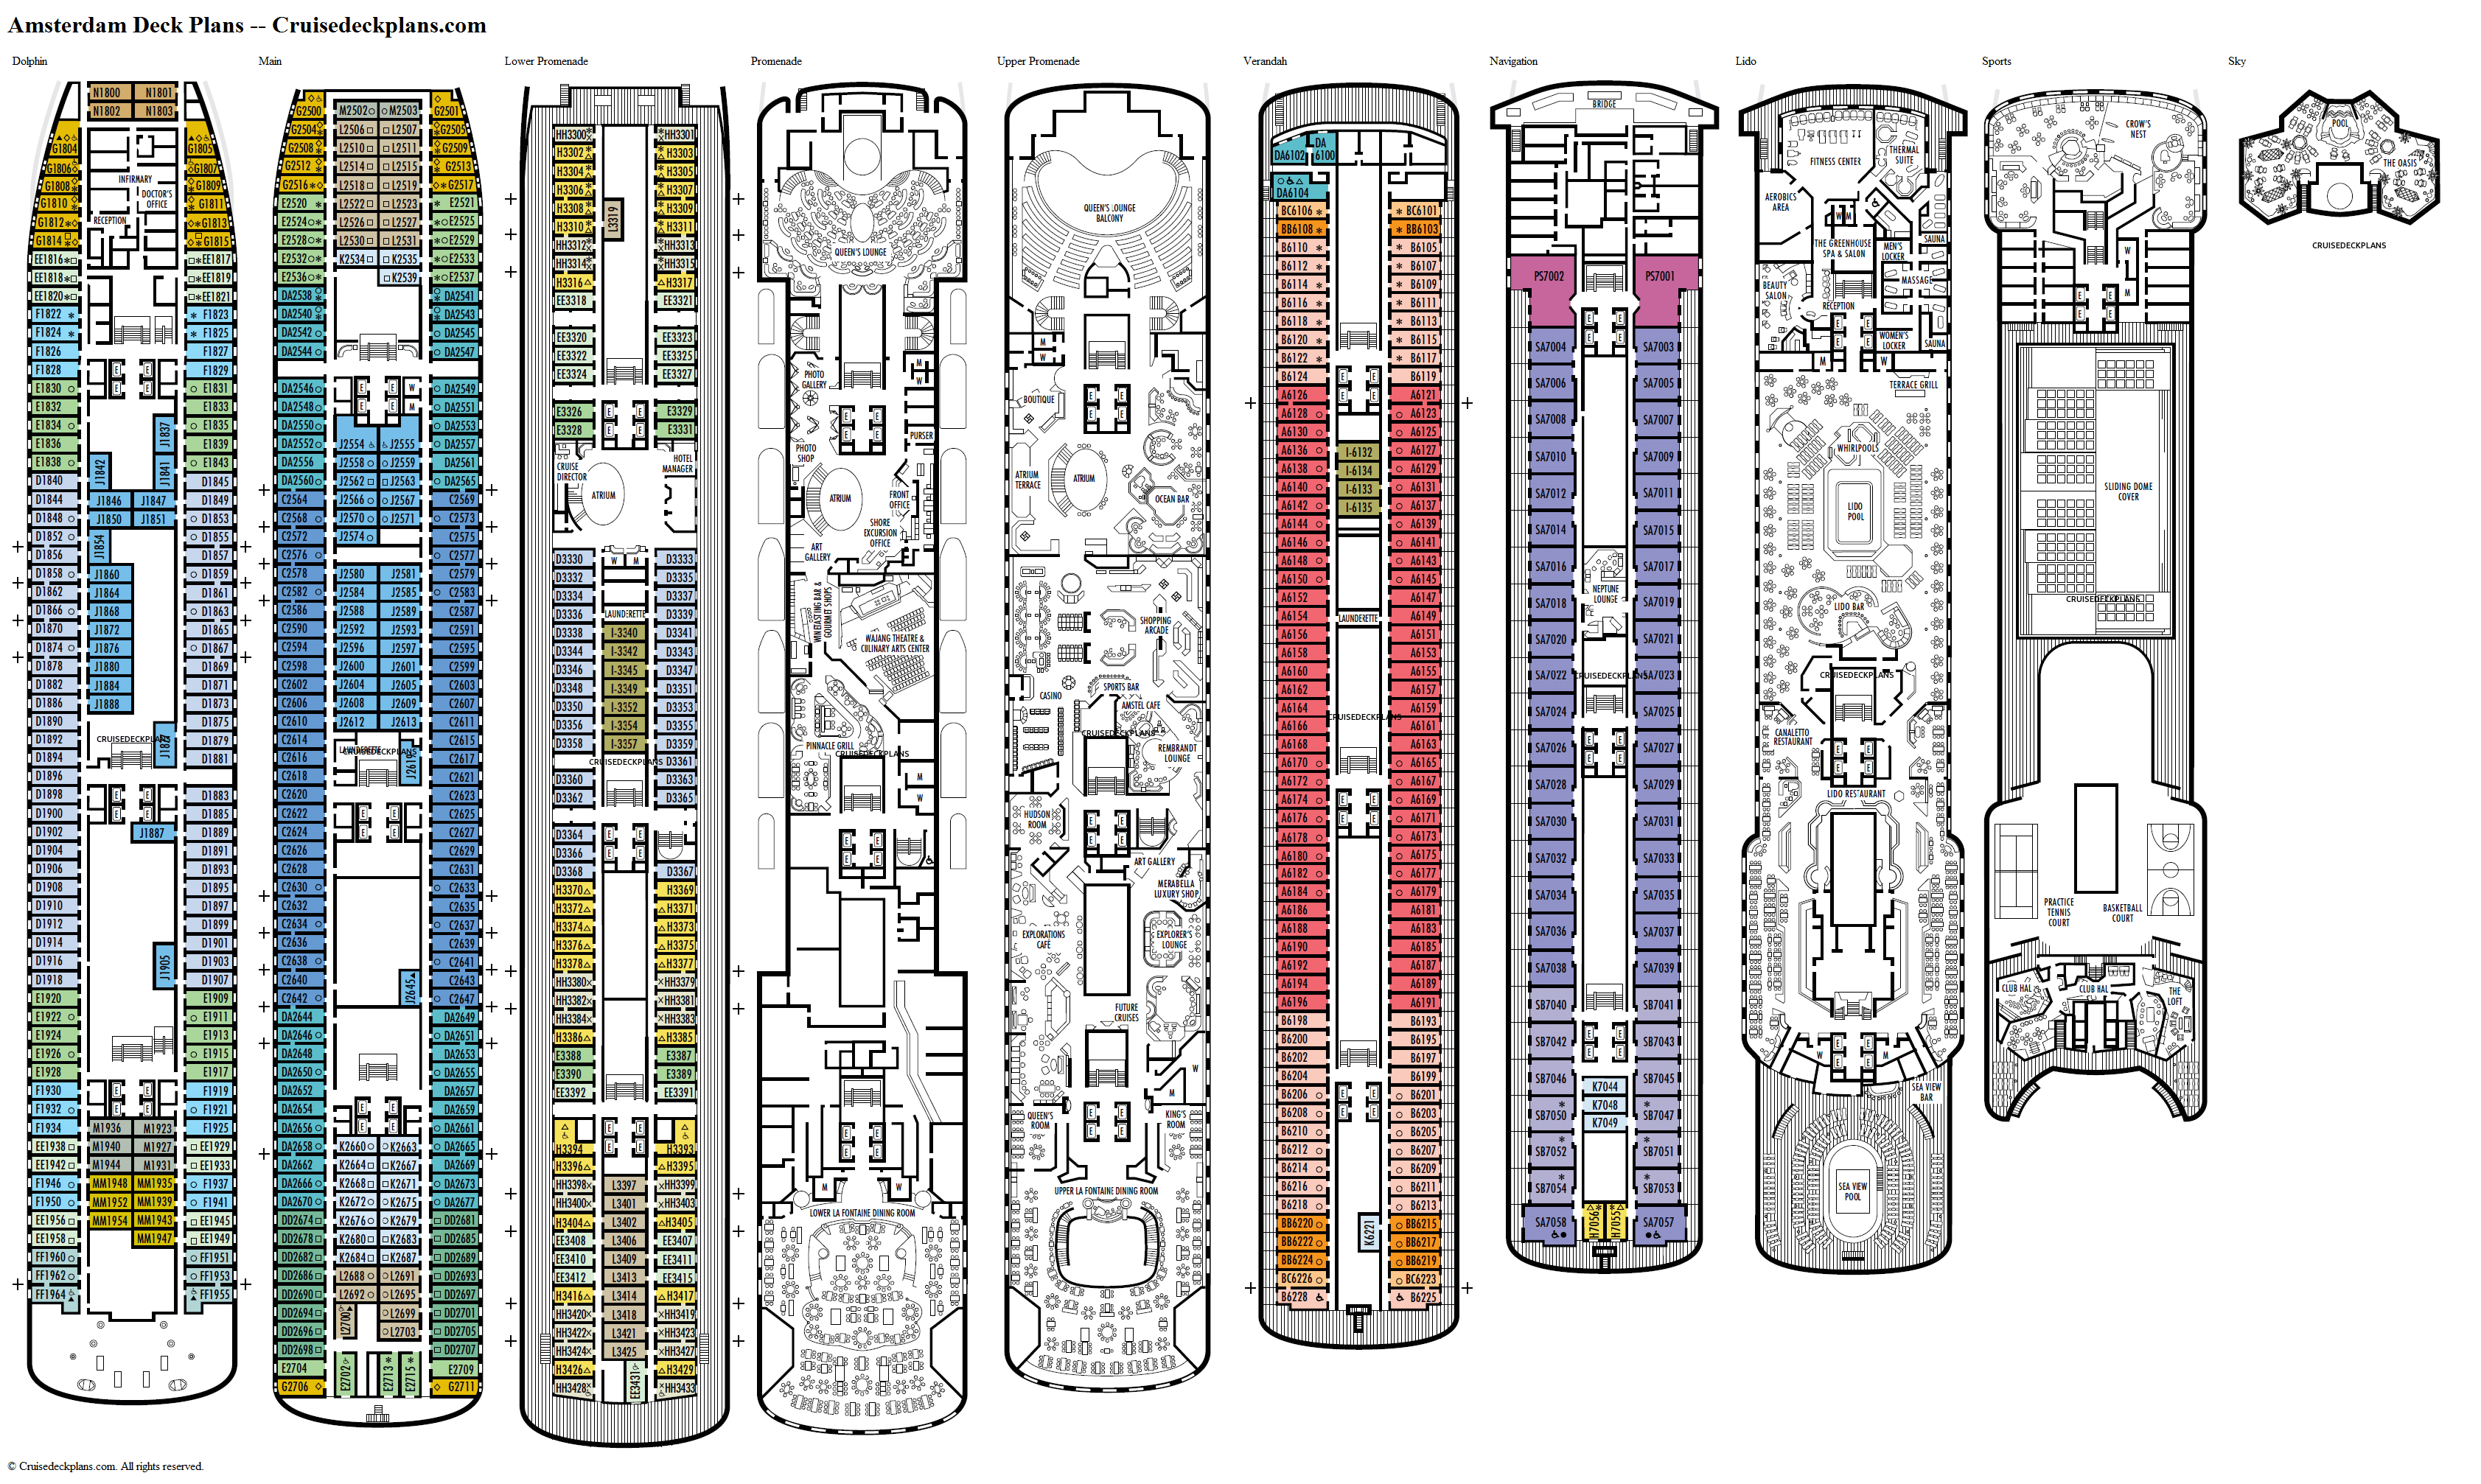 Amsterdam deck plans image